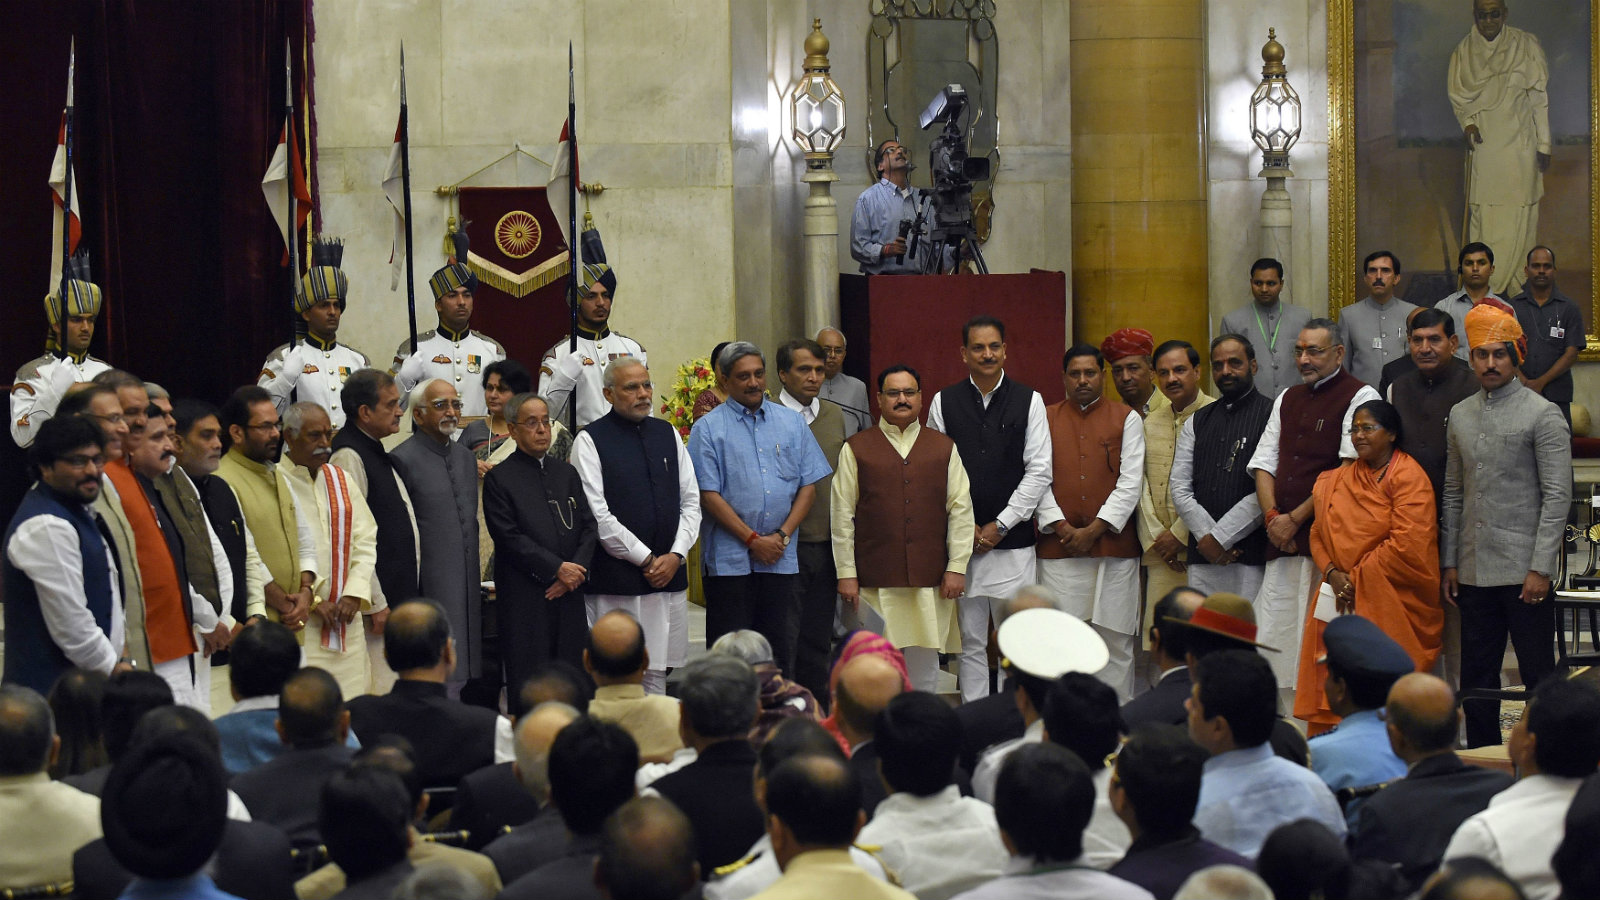 India's President Pranab Mukherjee (12th L) and Prime Minister Narendra Modi (13th L) pose with new cabinet ministers after a swearing-in ceremony at the presidential palace in New Delhi November 9, 2014. Picture take November 9, 2014.